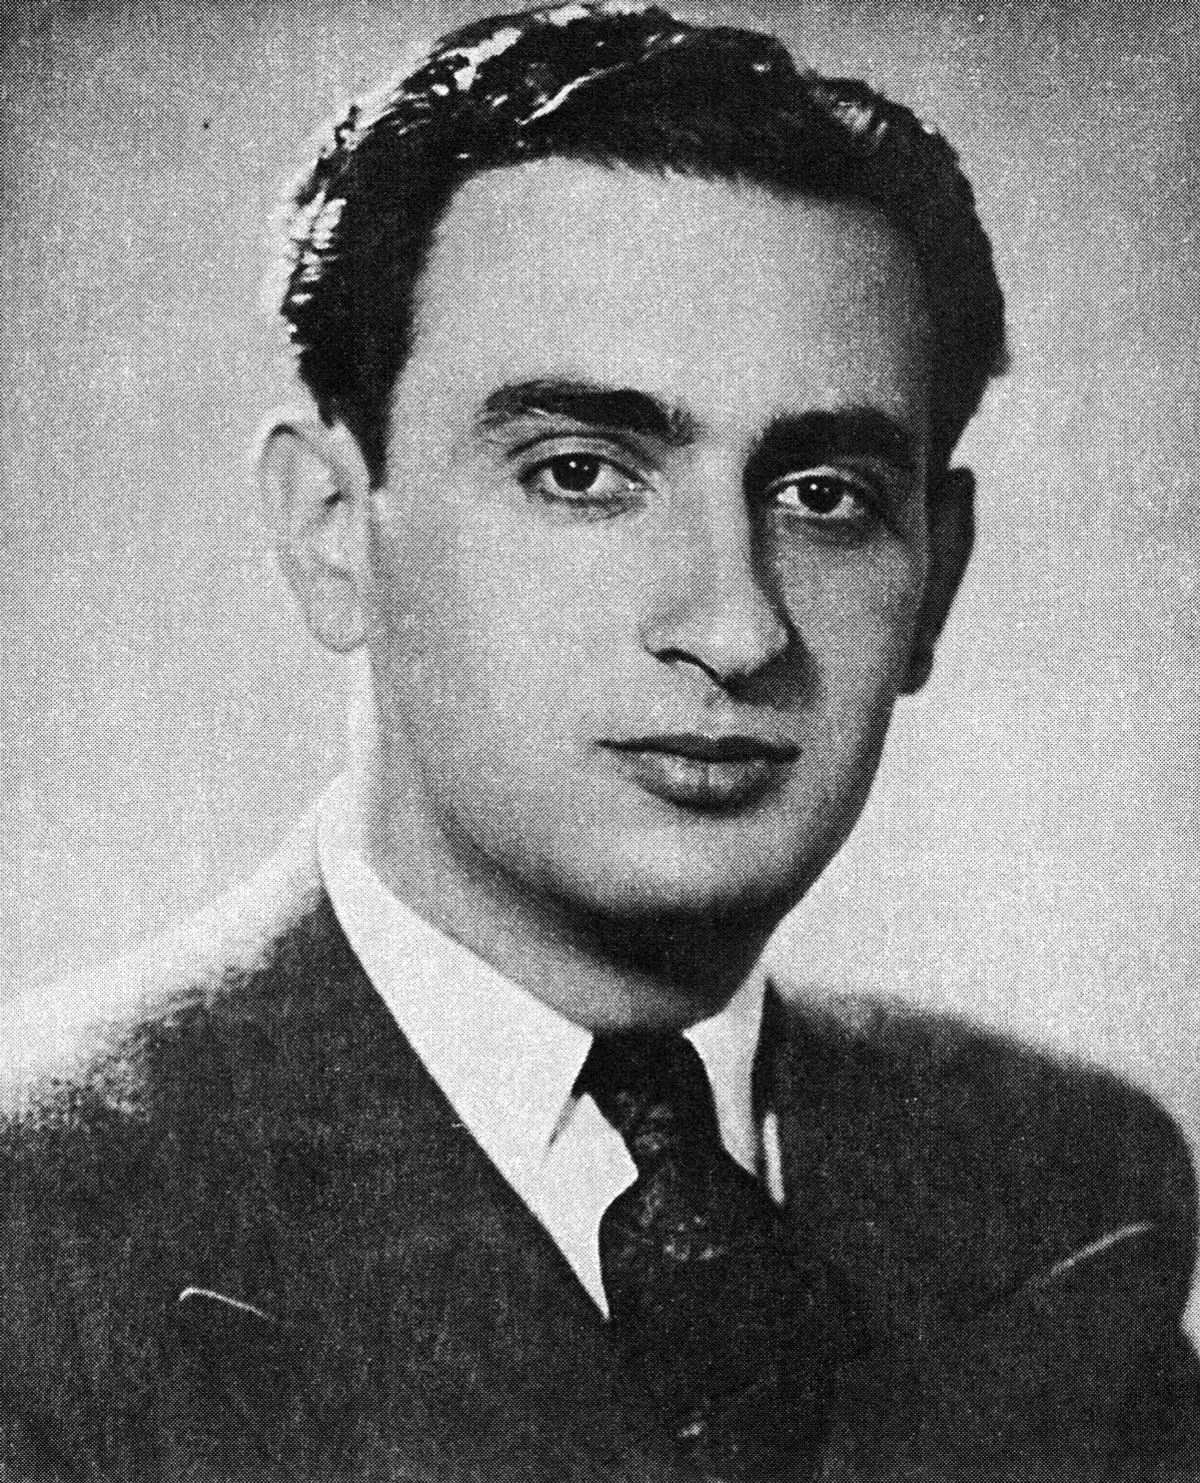 Leon Cohen (Greek: Λεών Κοέν ; born 15 June 1910 in Thessaloniki, Greece and died in August 1989 in Bat Yam, Israel), is a Jewish-Greek survivor of the Auschwitz concentration camp. He was a member of the Sonderkommando in Birkenau from May to November 1944.